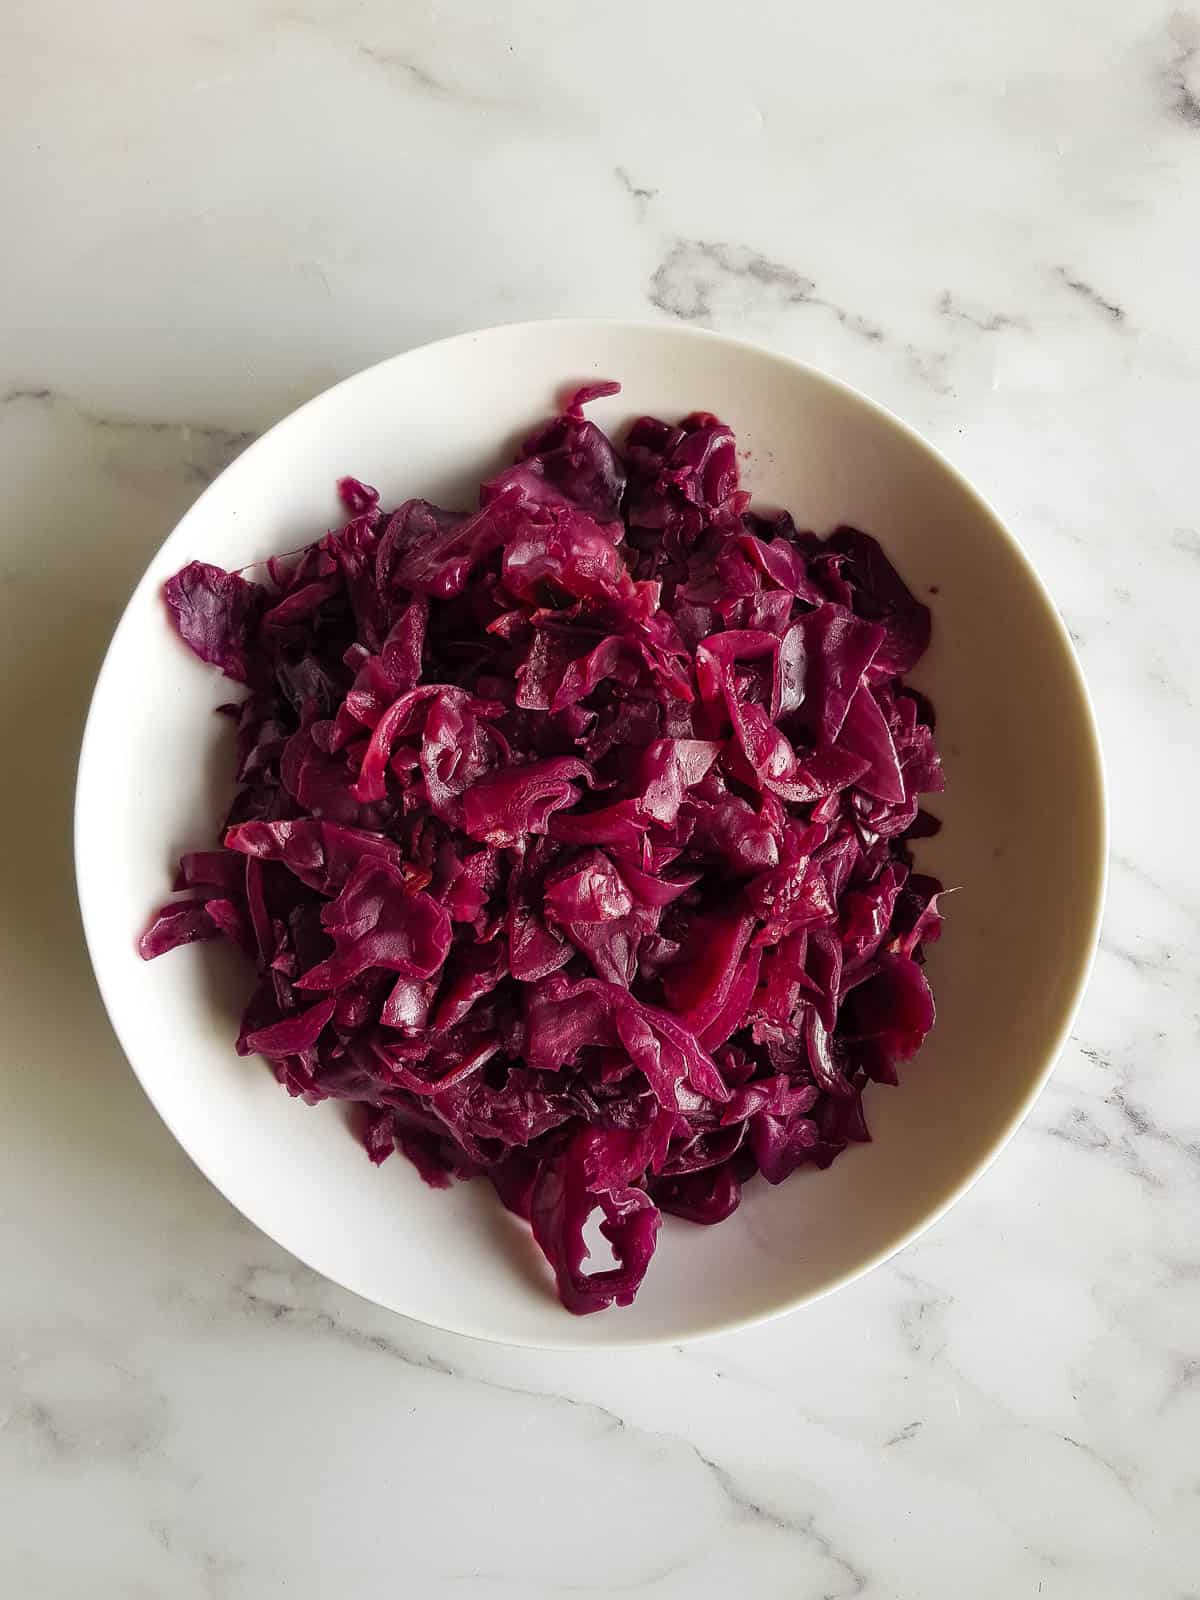 Slow cooked red cabbage in  a bowl.